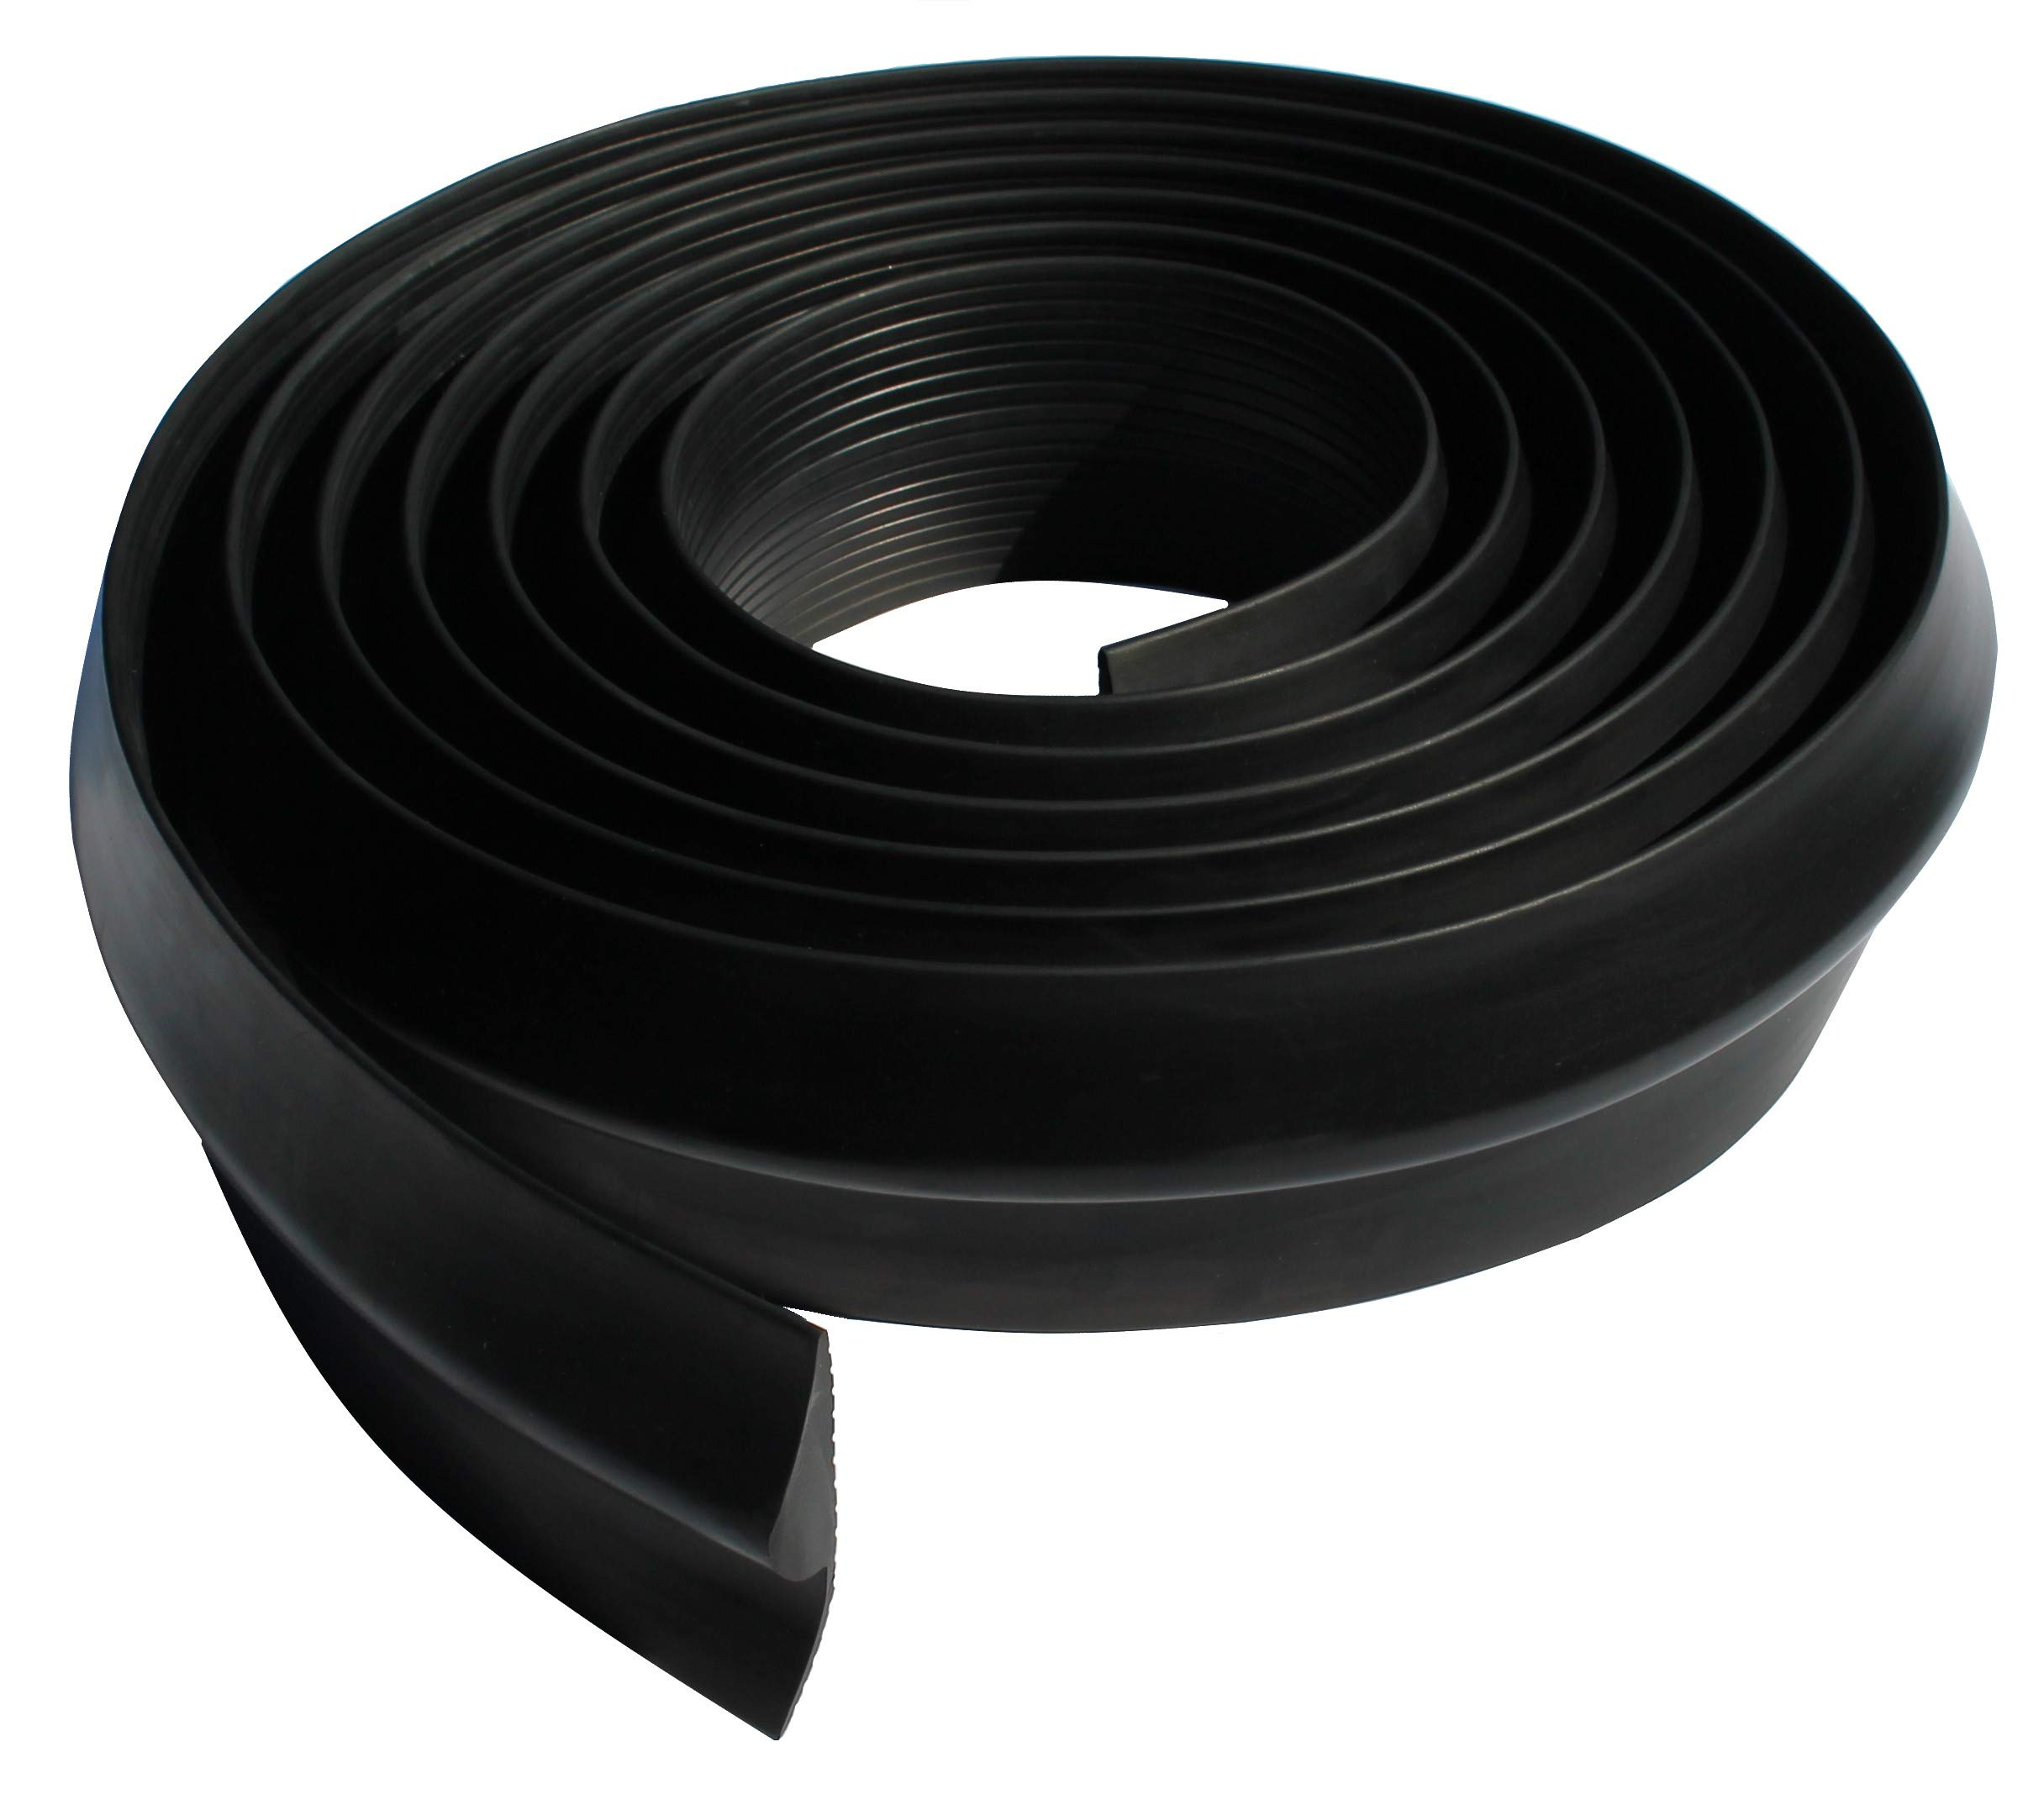 Vat Industries - Universal Weather Stripping Seal for Garage Door Threshold - 11/16 Inch Thick 20 Feet Length by Vat Industries